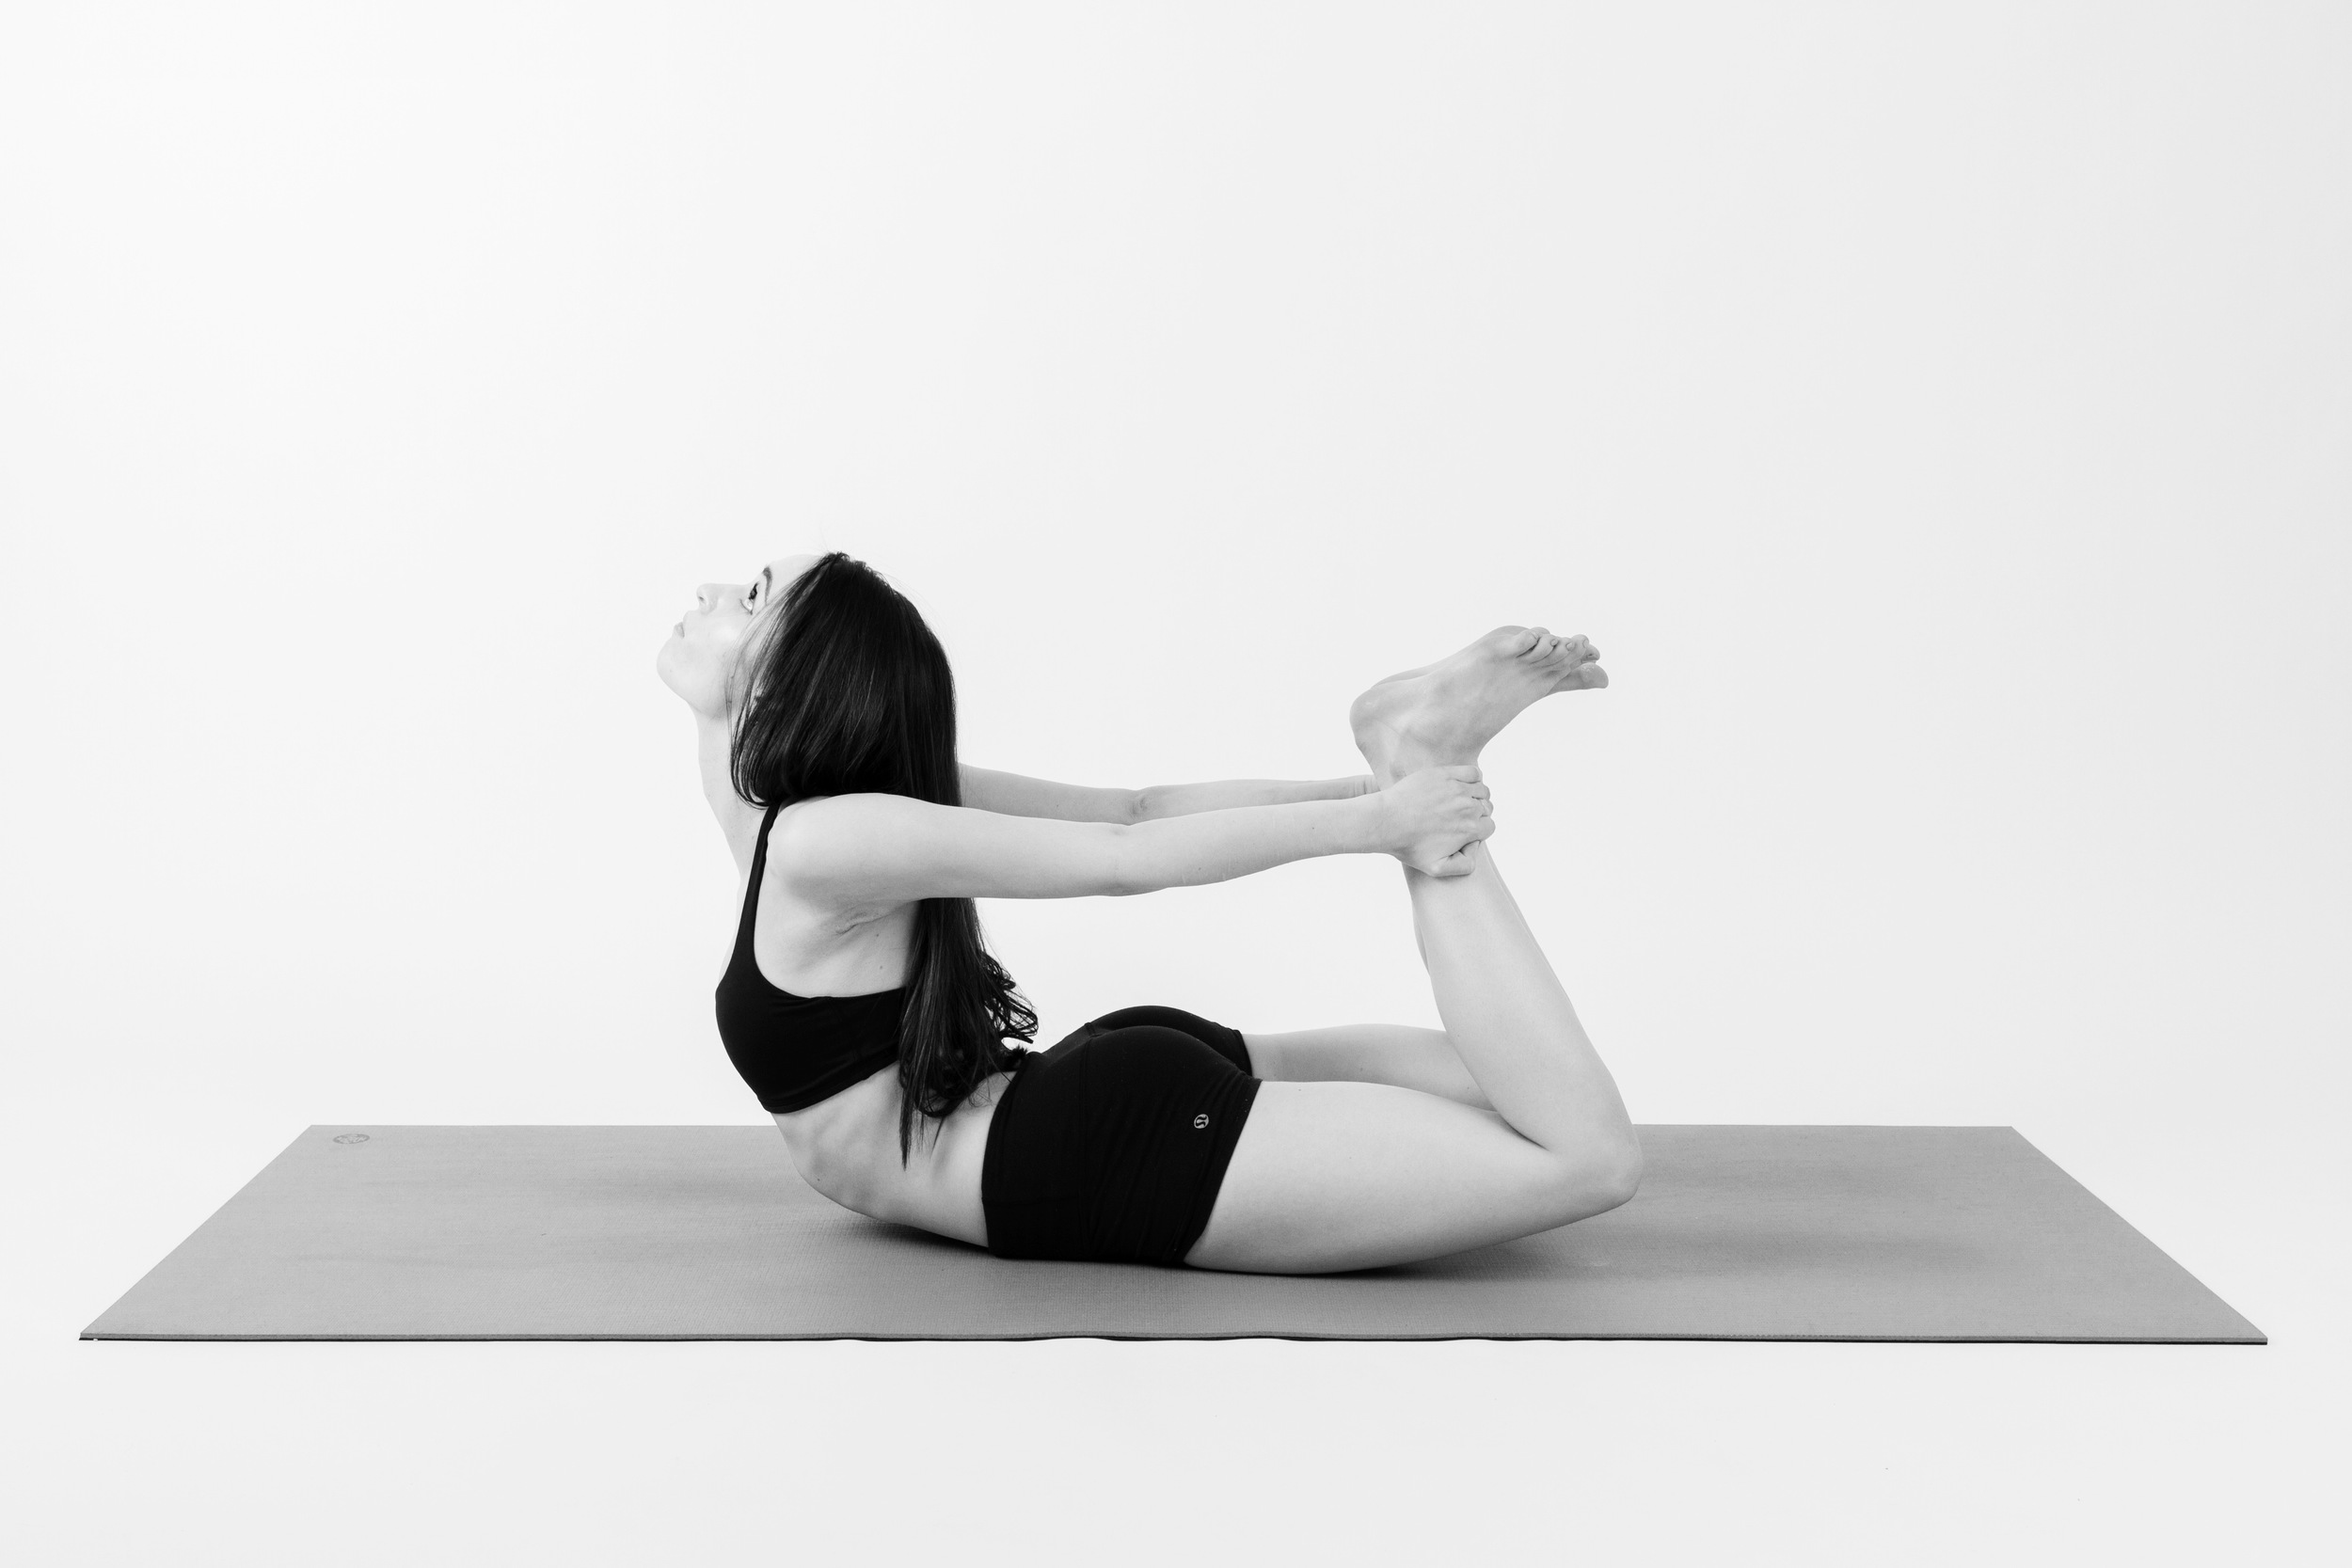 BOW    Start to bend your knees back behind you. Reach back with both hands and grab a hold of your ankles, or the outsides of your feet. Try extending just a little higher, lift your chest and feet as you look up.